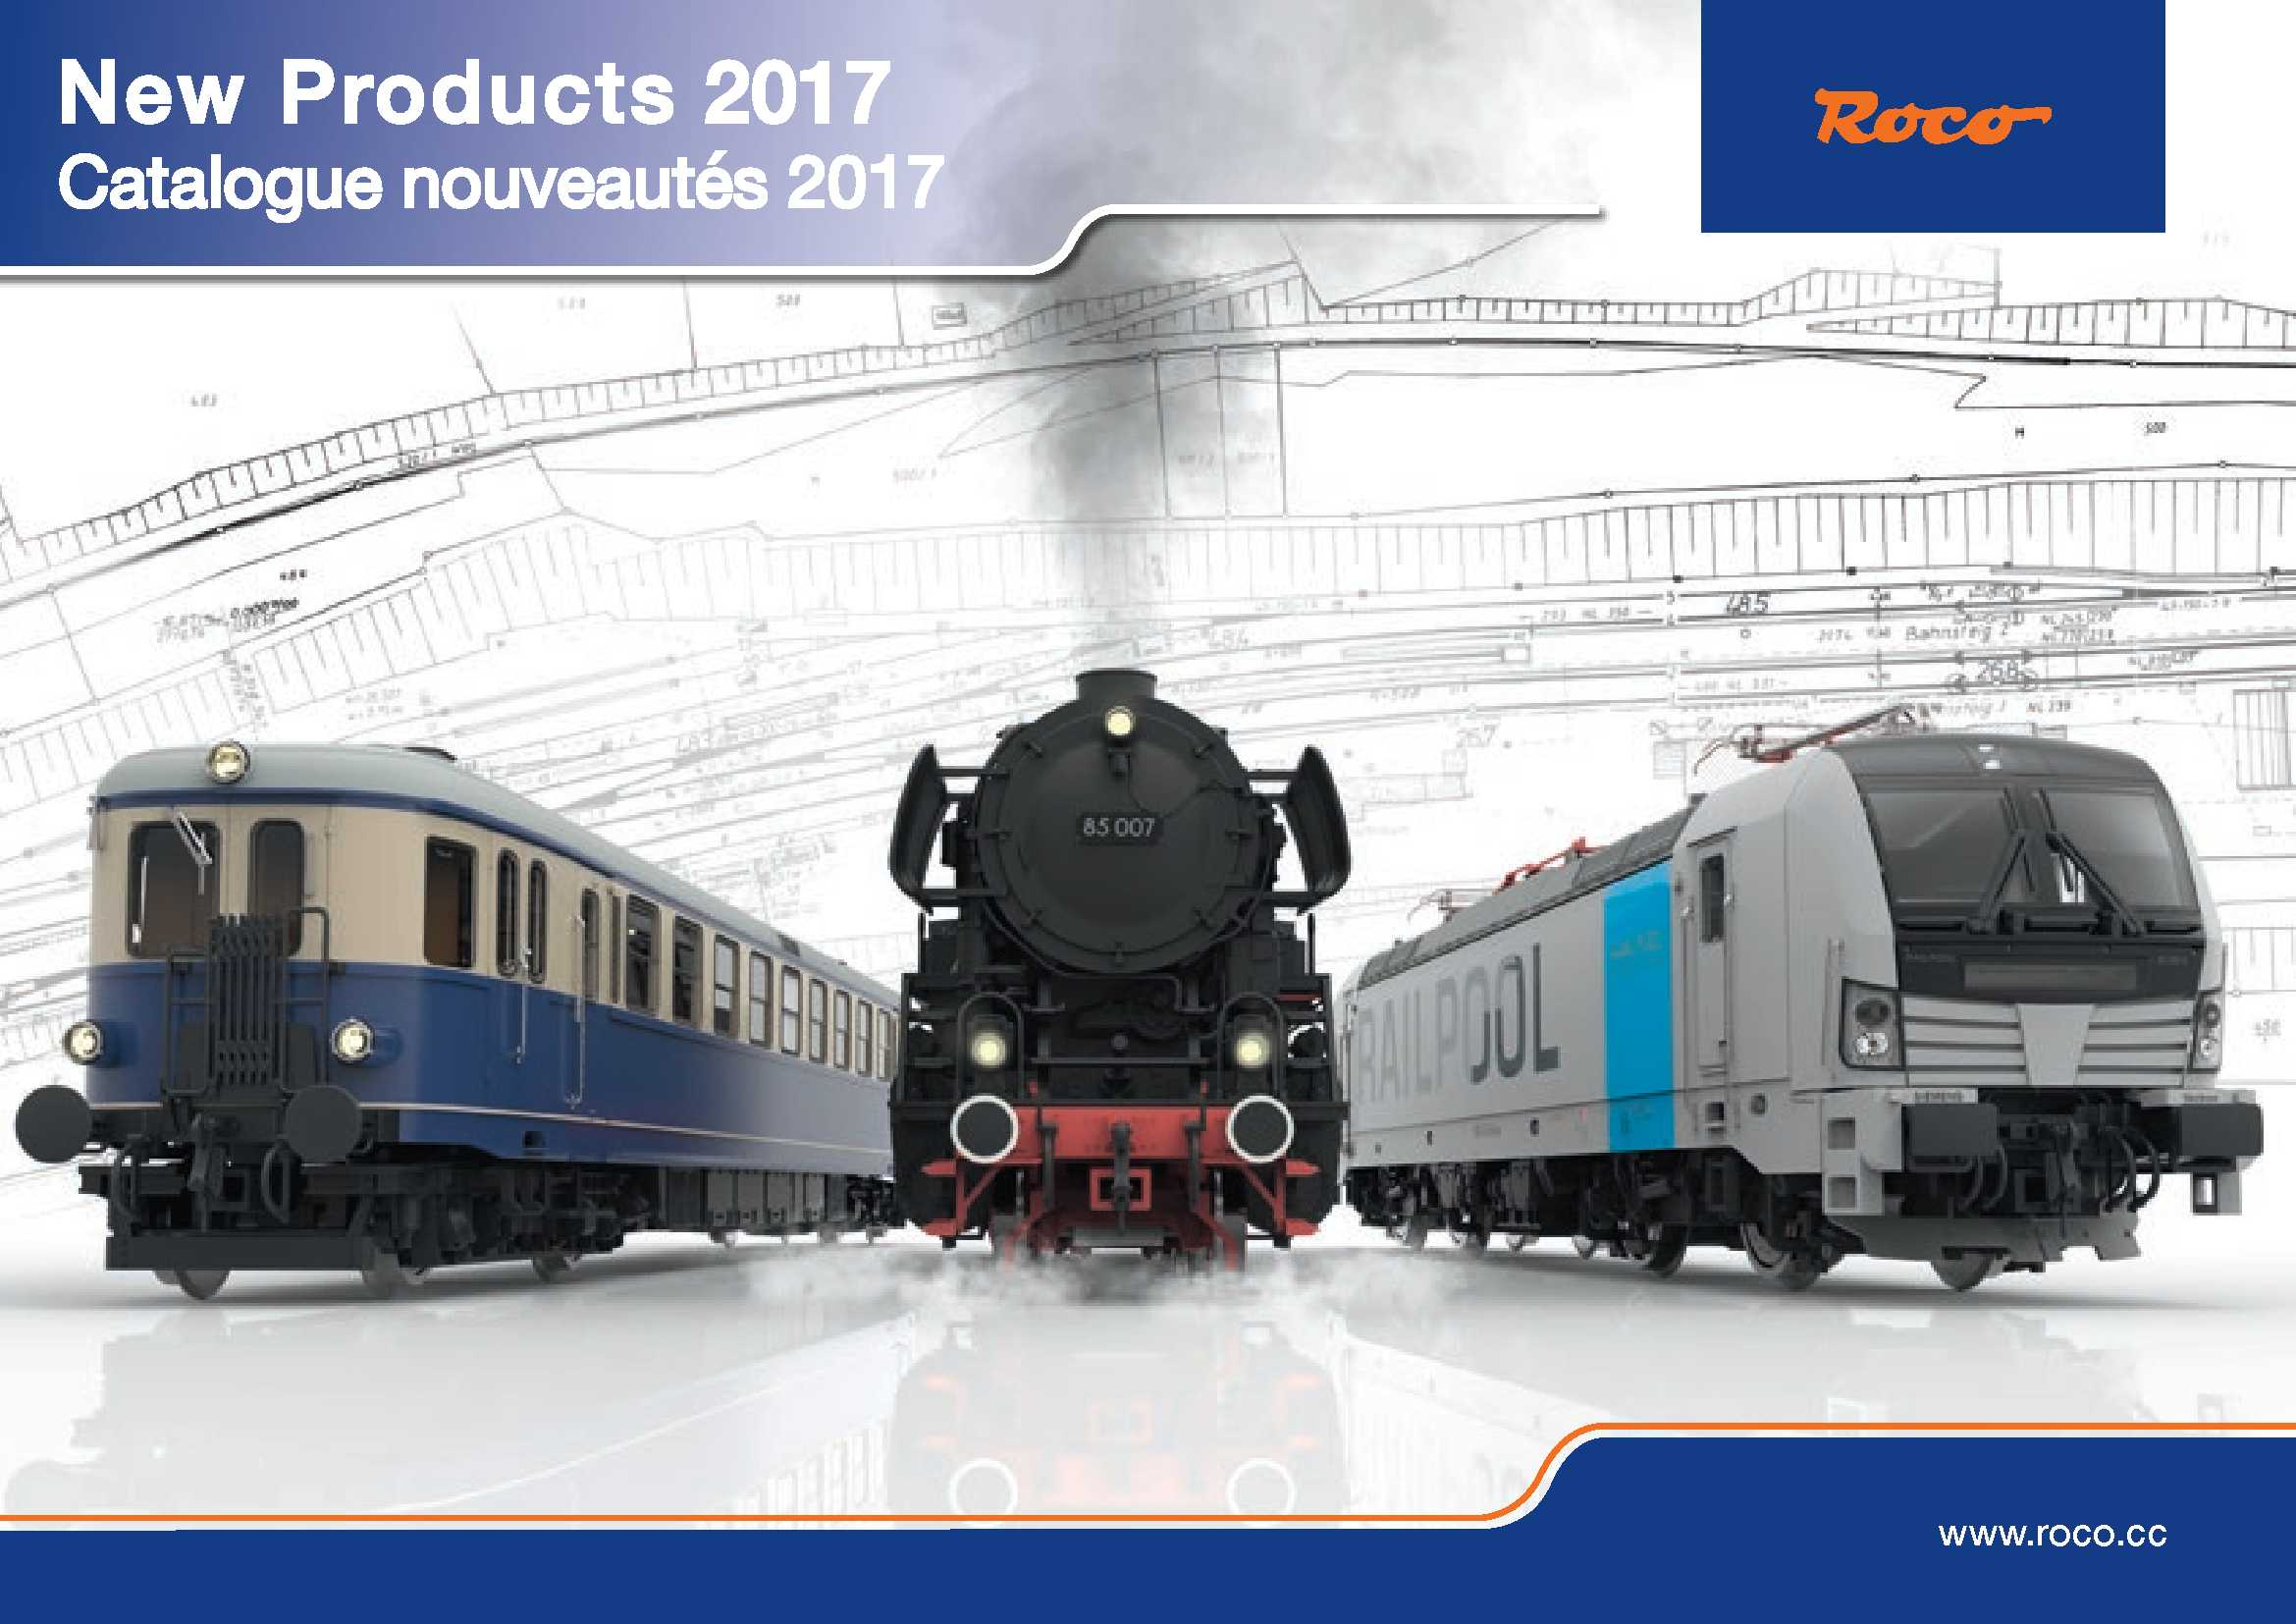 Roco News 2017 for HO scale